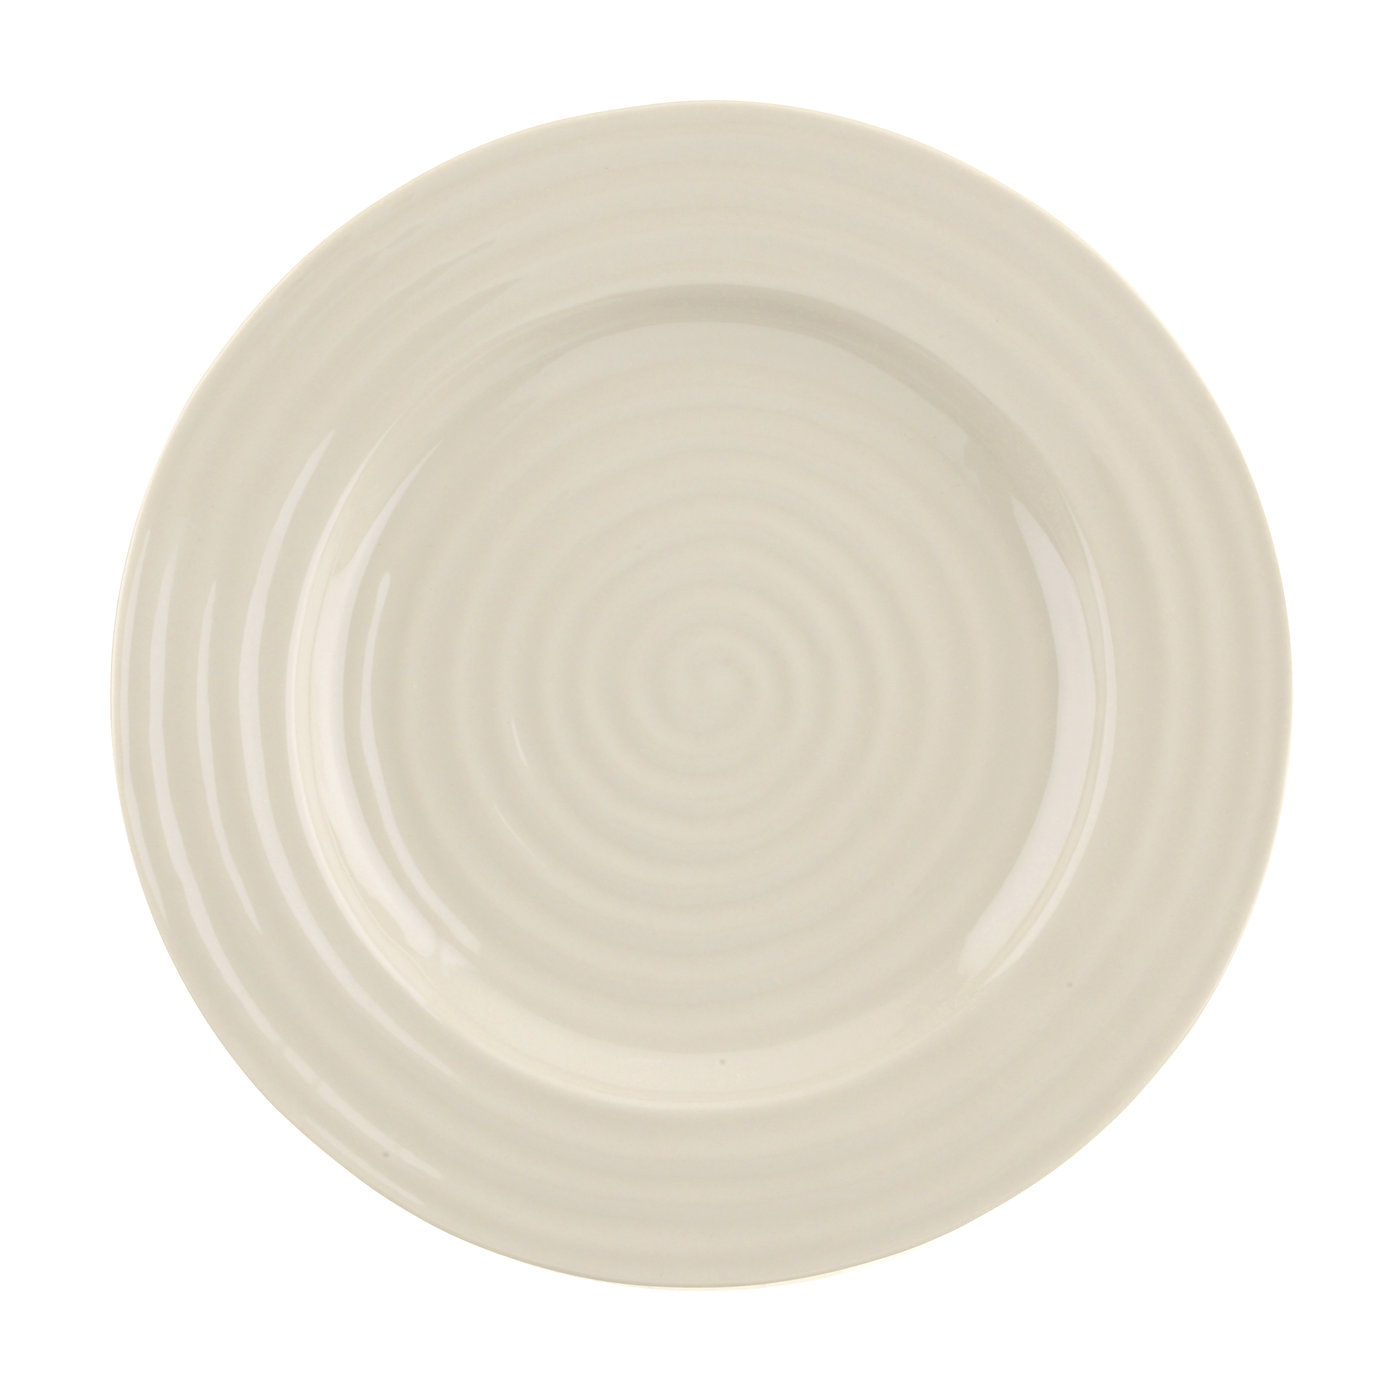 포트메리온 '소피 콘란' 접시 4개 세트 Portmeirion Sophie Conran Set of 4 Pebble 9 Inch Luncheon Plates